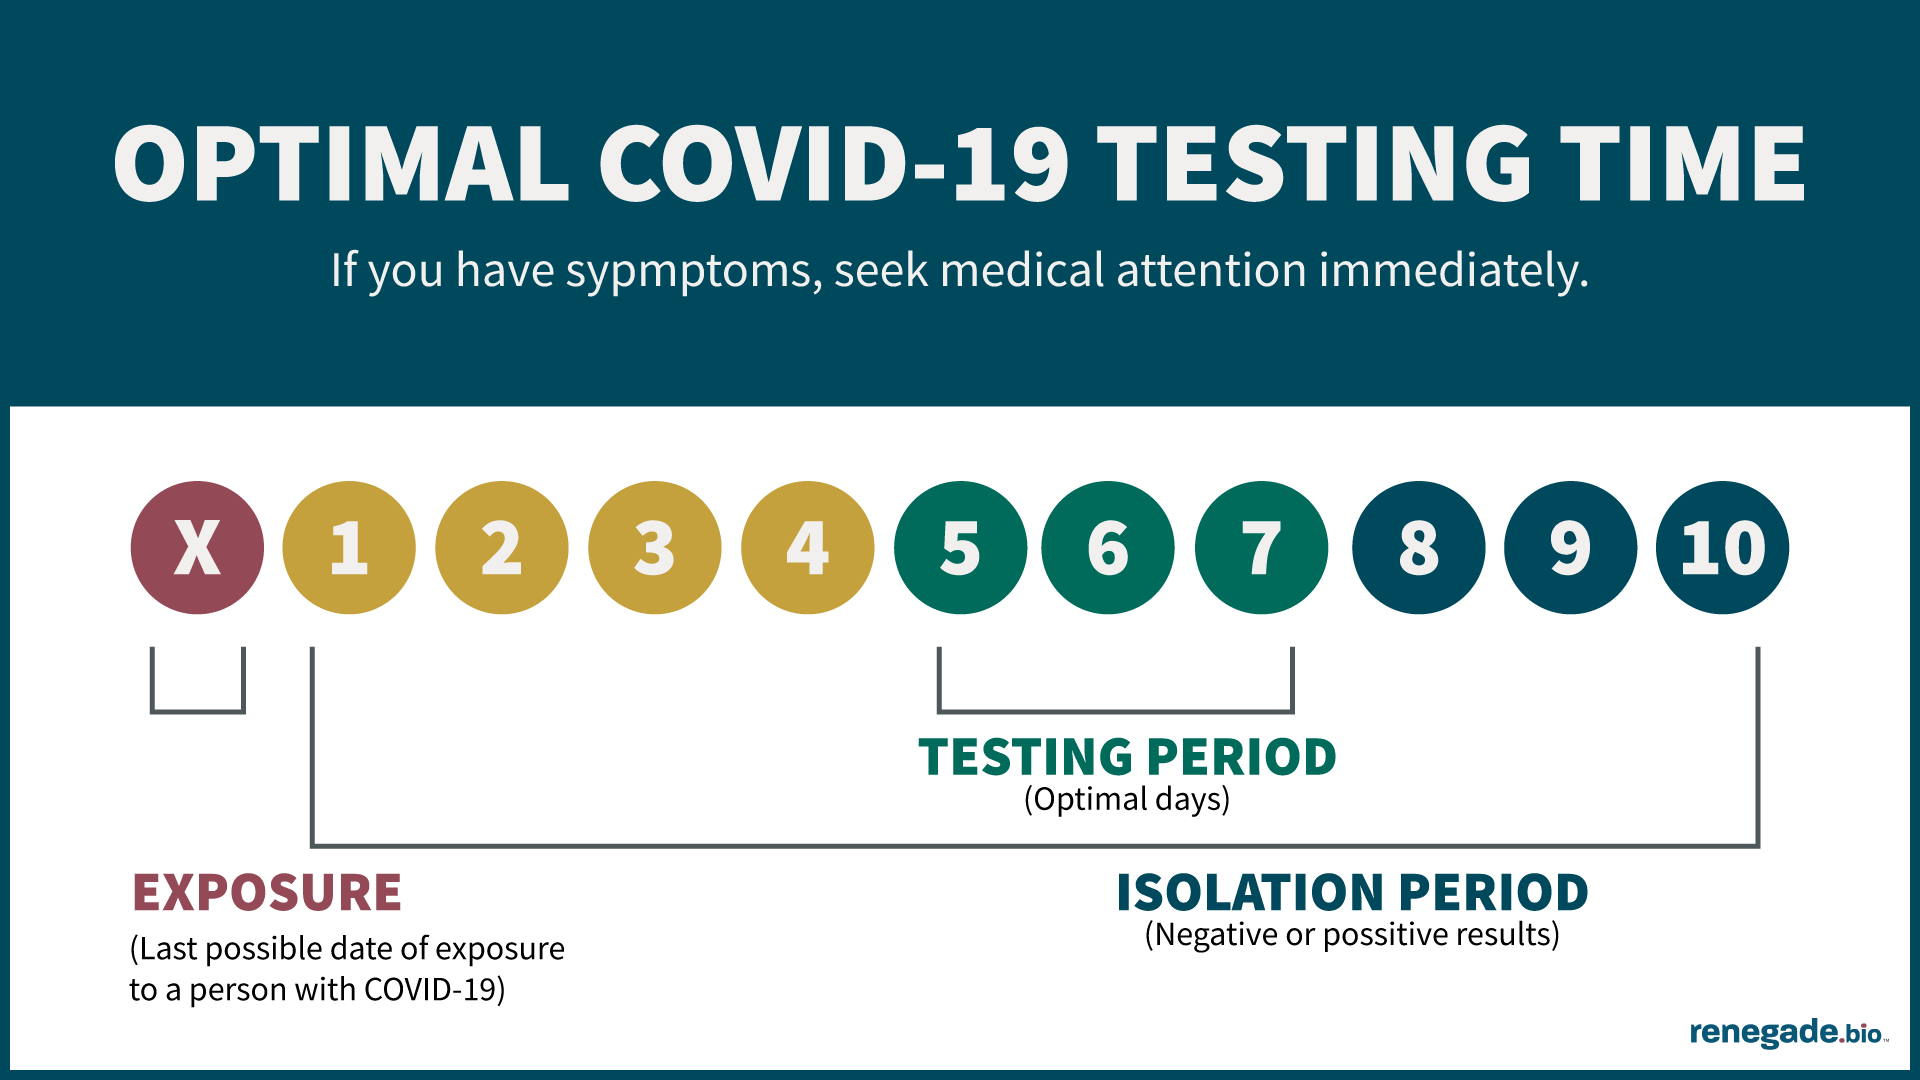 Infographic of optimal COVID-19 testing period